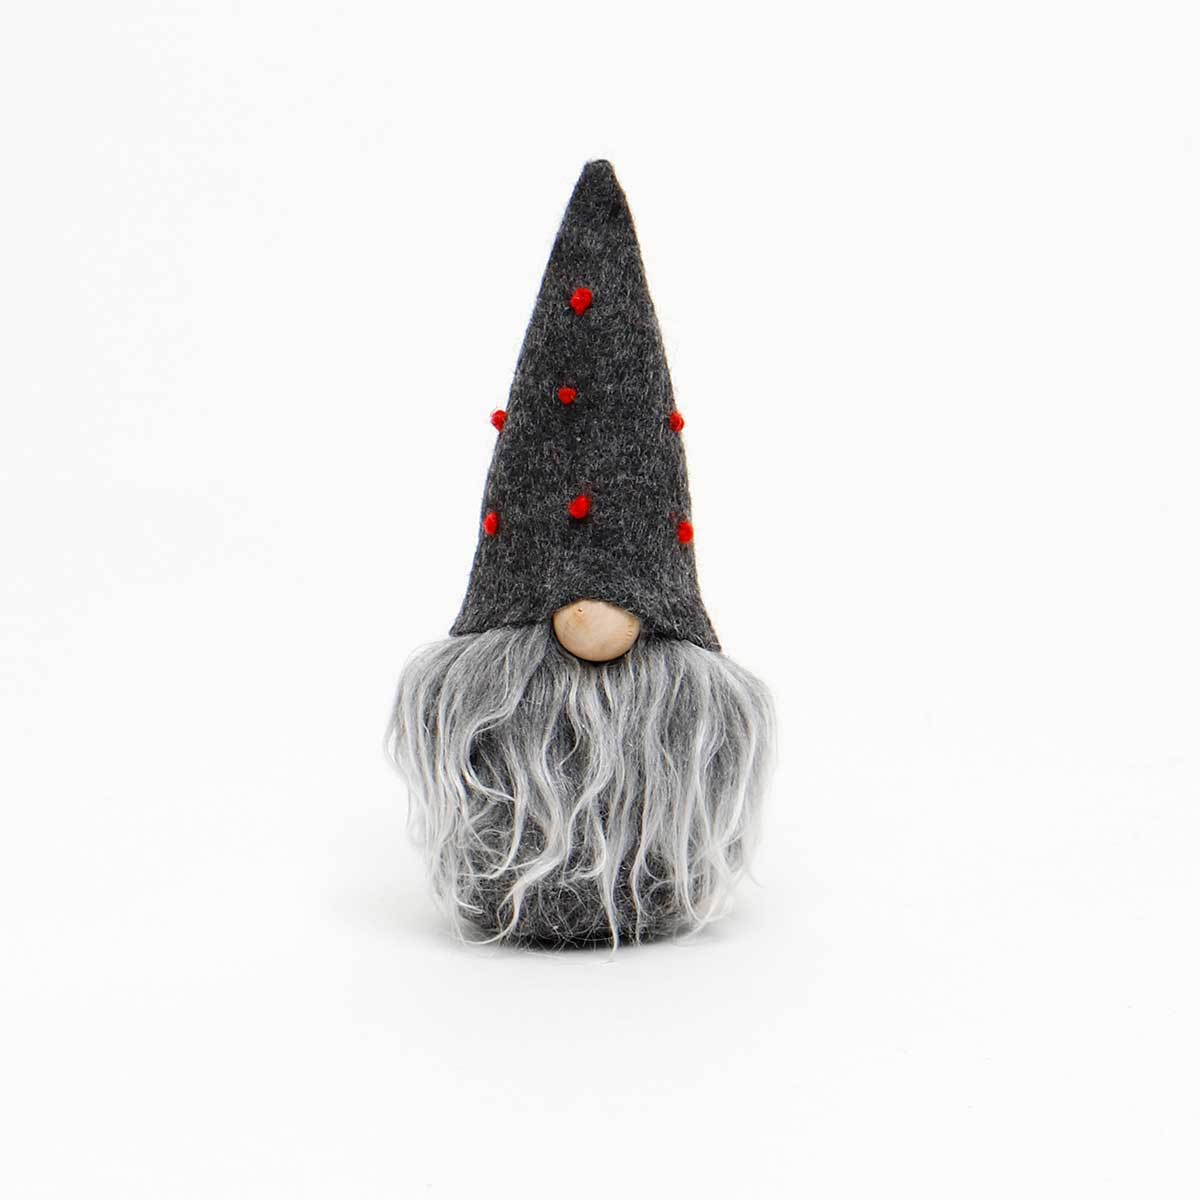 MINI GNOME WITH RED DOTTED